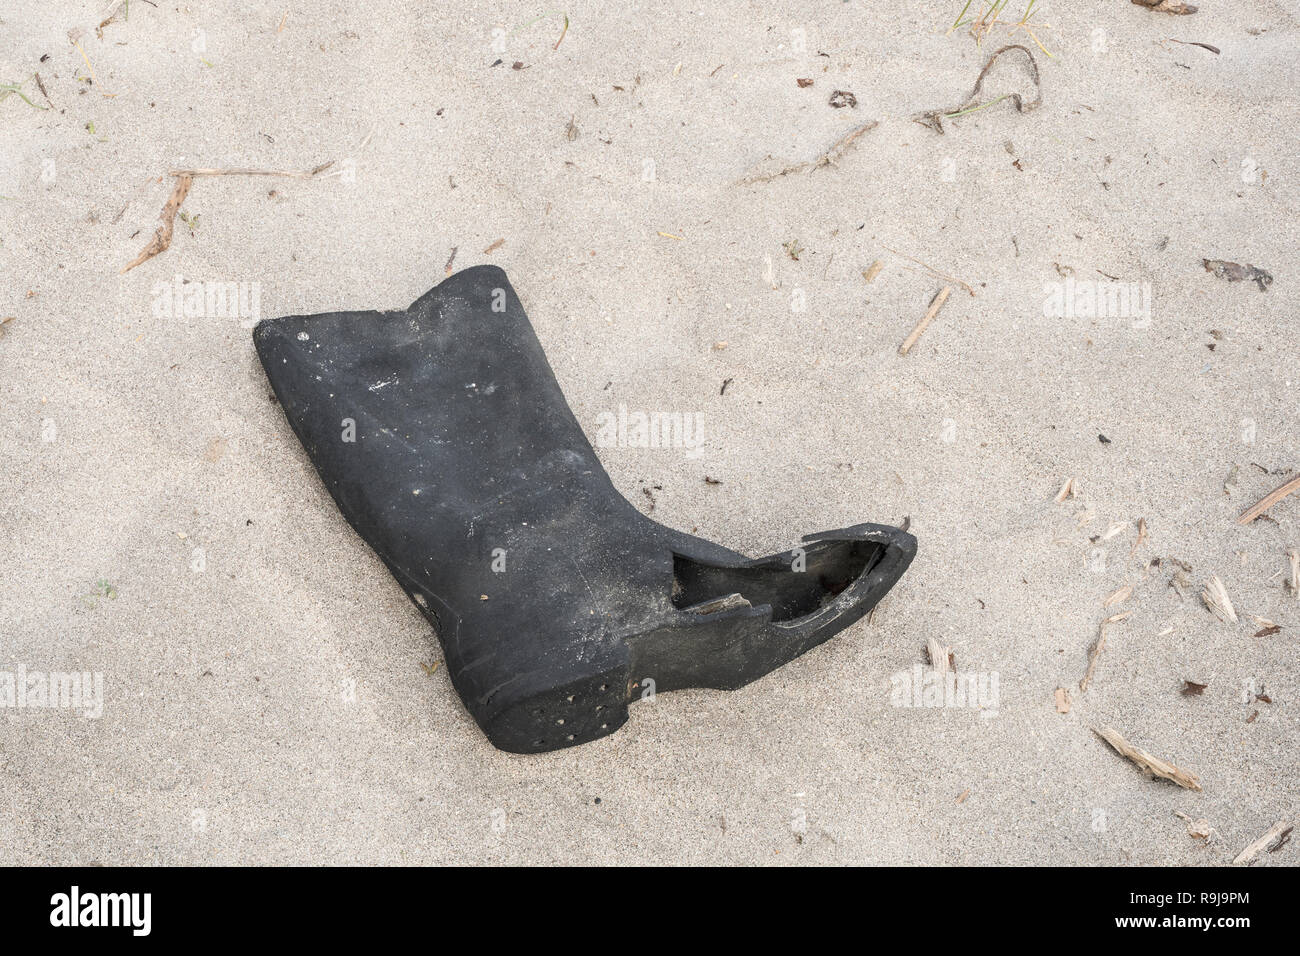 Old rubber boot washed up on shore & polluting the shoreline. Metaphor plastic pollution, environmental pollution, war on plastic, old footwear. Stock Photo